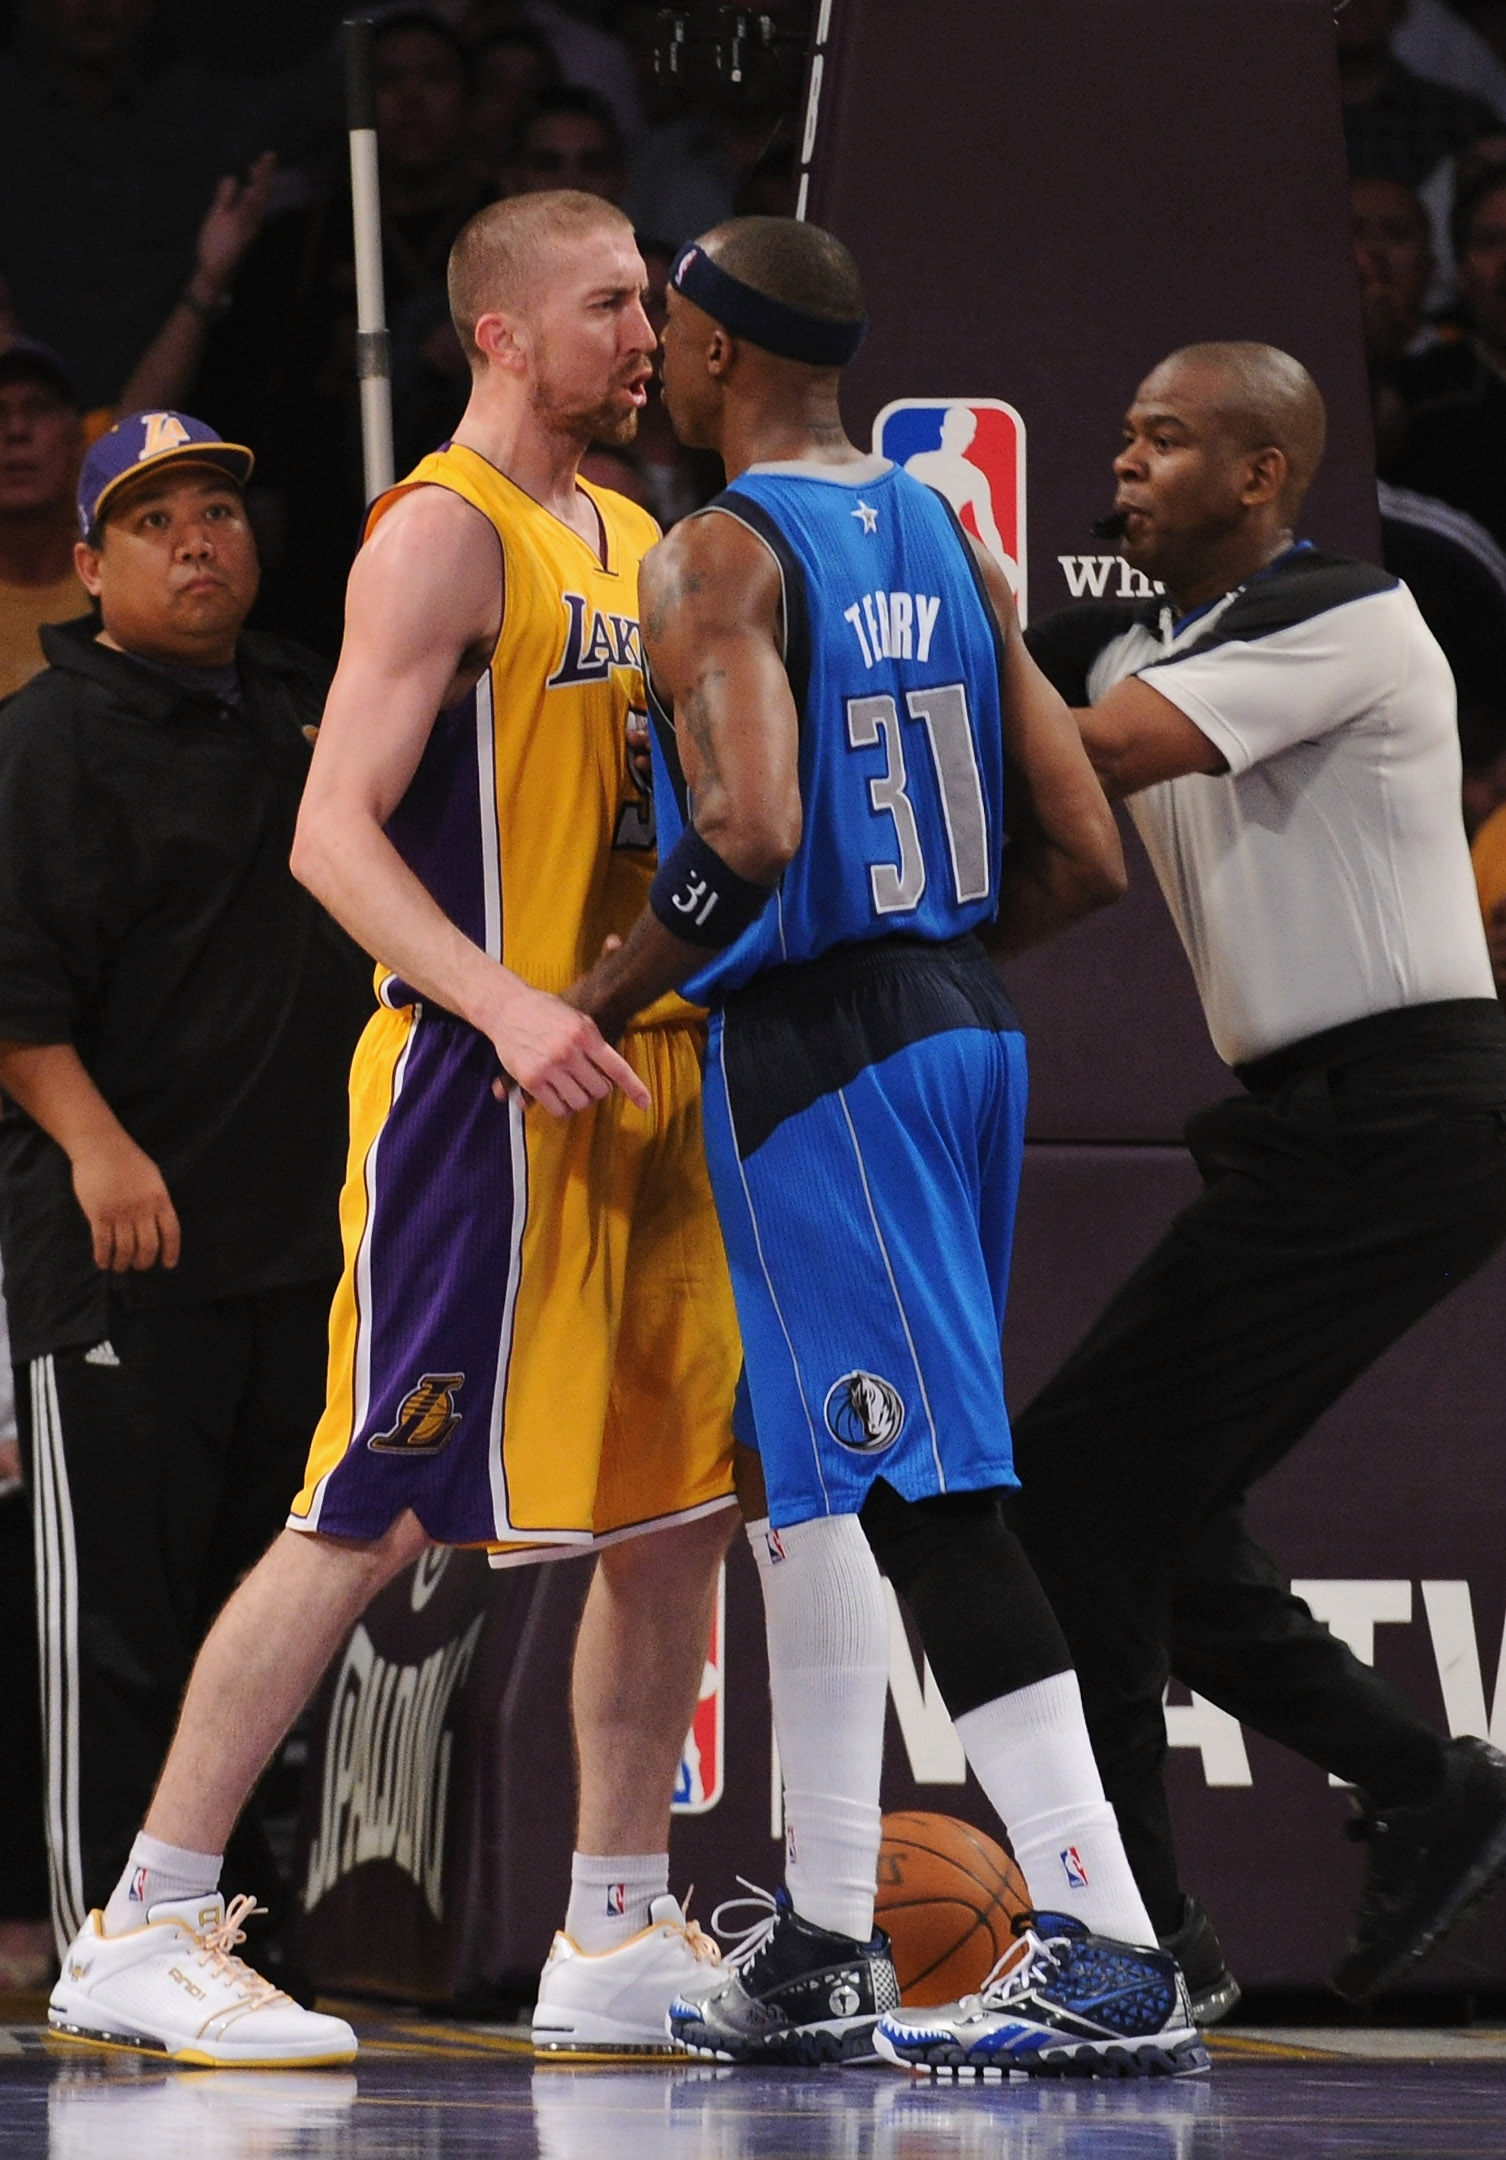 LOS ANGELES, CA - MARCH 31:  Steve Blake #5 of the Los Angeles Lakers and Jason Terry #31 of the Dallas Mavericks push and argue at Staples Center on March 31, 2011 in Los Angeles, California.  Blake and Terry were ejected from the game.  NOTE TO USER: Us